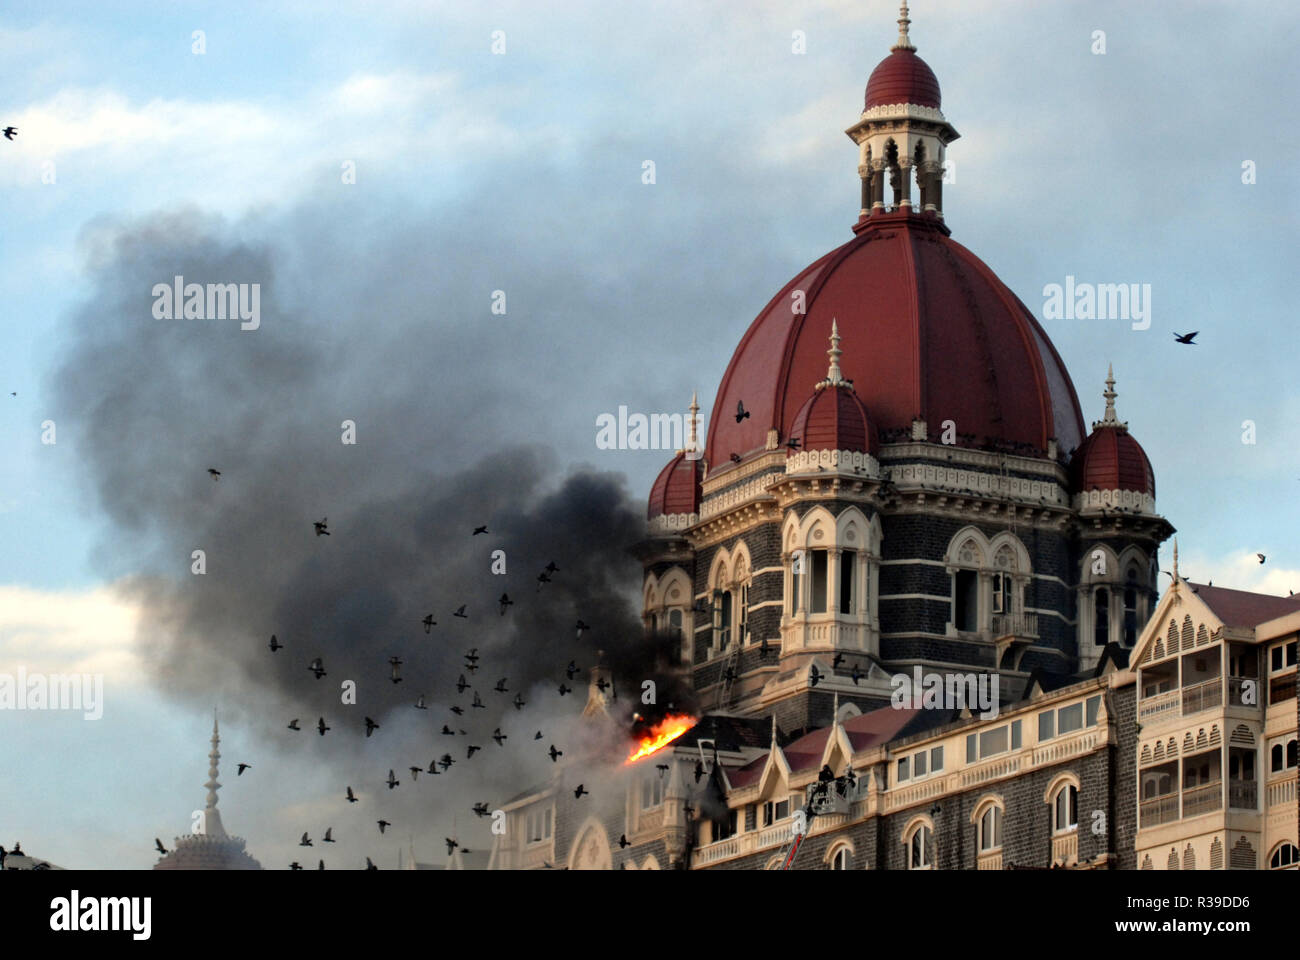 Taj Mahal Hotel burning after it was attacked by Deccan Mujahideen terrorists in South Mumbai India on 27/11/2008. Terrorists killed 100 people and wounded more than 200 in a series of coordinated attacks across India?s financial hub Mumbai as Heavily armed gunmen in groups of two to four opened fire with automatic weapons and lobbed grenades in 10 places in south Mumbai, including the five-star Taj and Trident hotels, the city?s main railway terminus, a hospital, a cafe, a pub and a cinema hall. Photo: Dinodia    (c) dpa - Report      usage worldwide - Stock Image